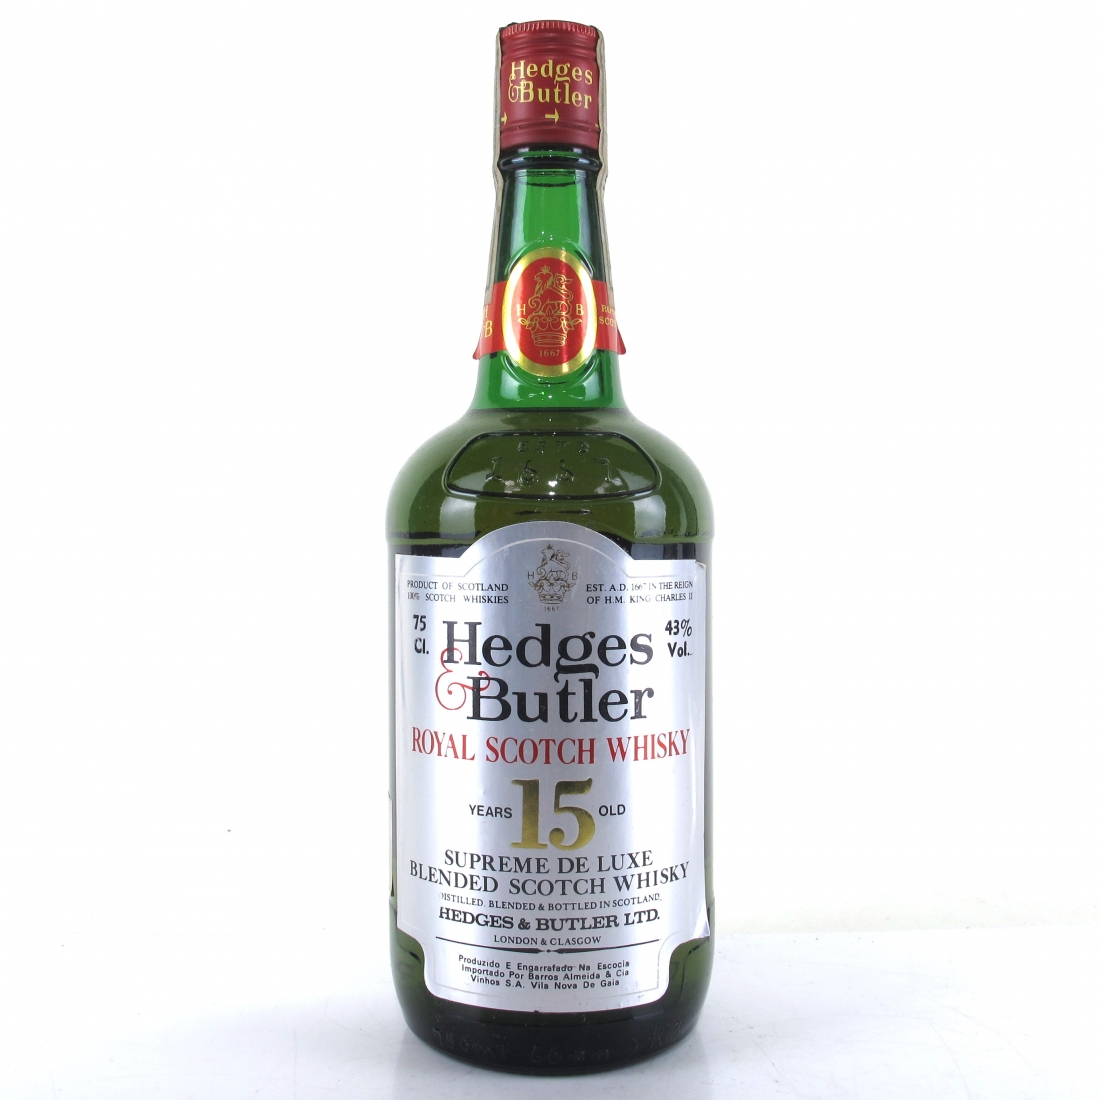 Hedges & Butler 15 Year Old Royal Scotch Whisky 1980s